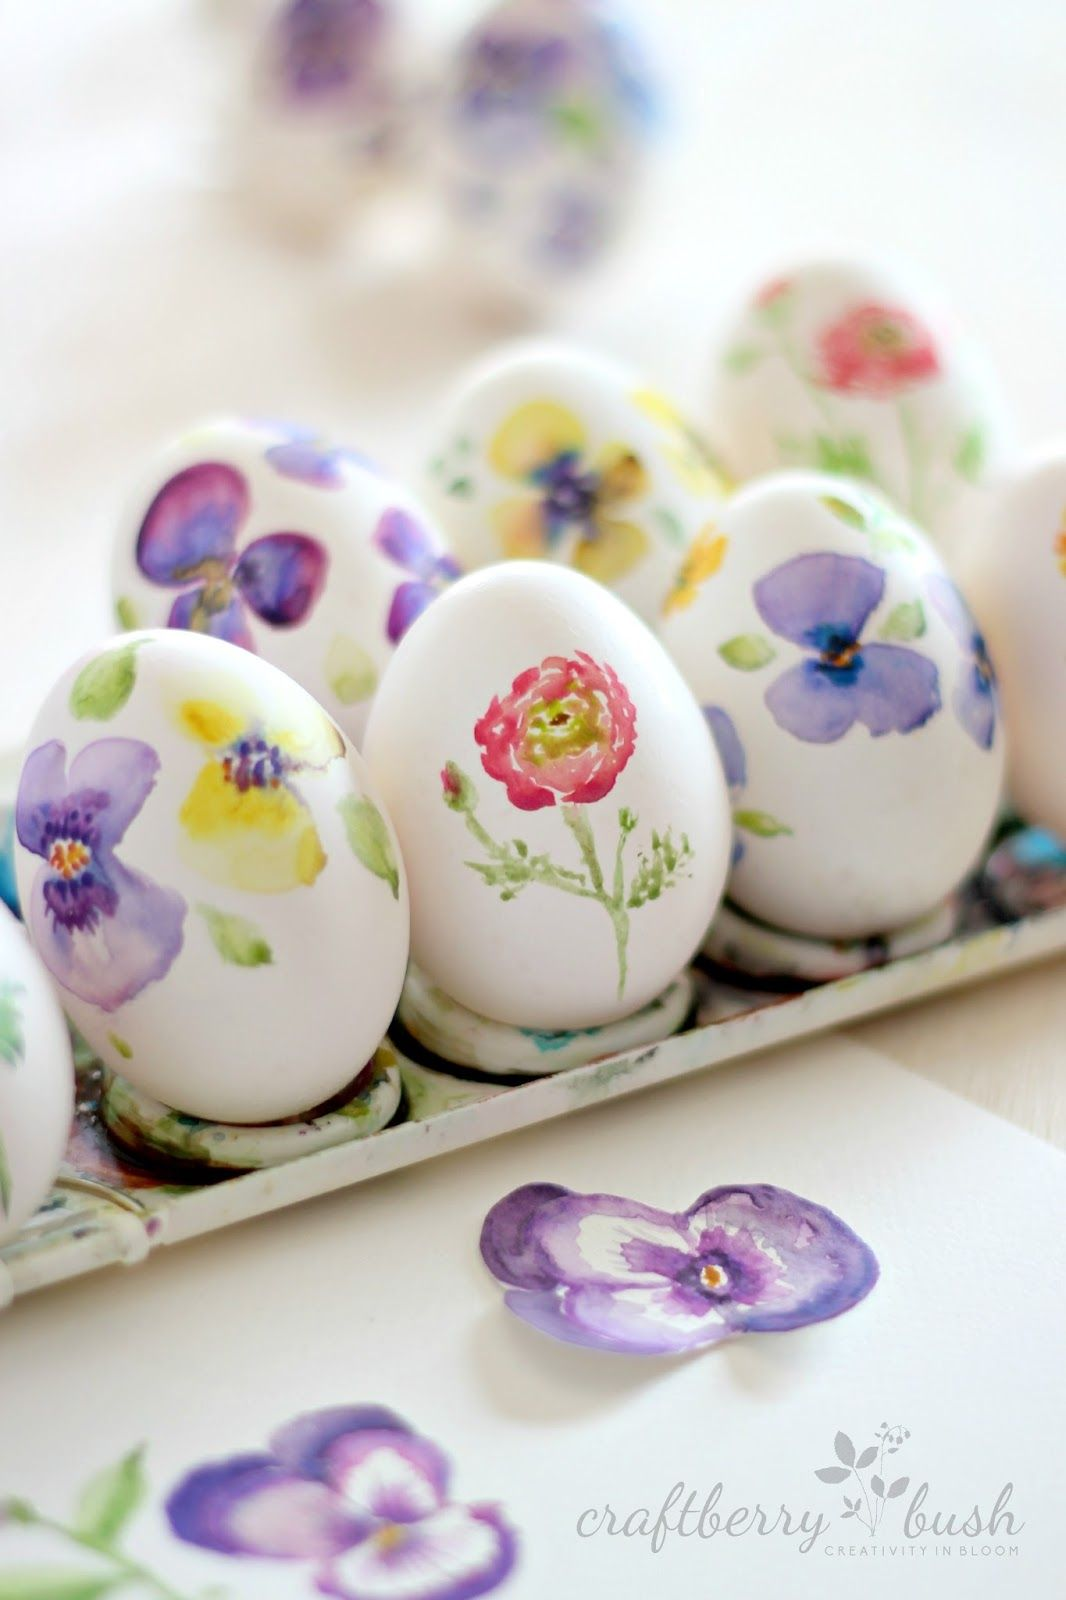 Master class with a photo of making crafts for Easter - Easter eggs with their own hands